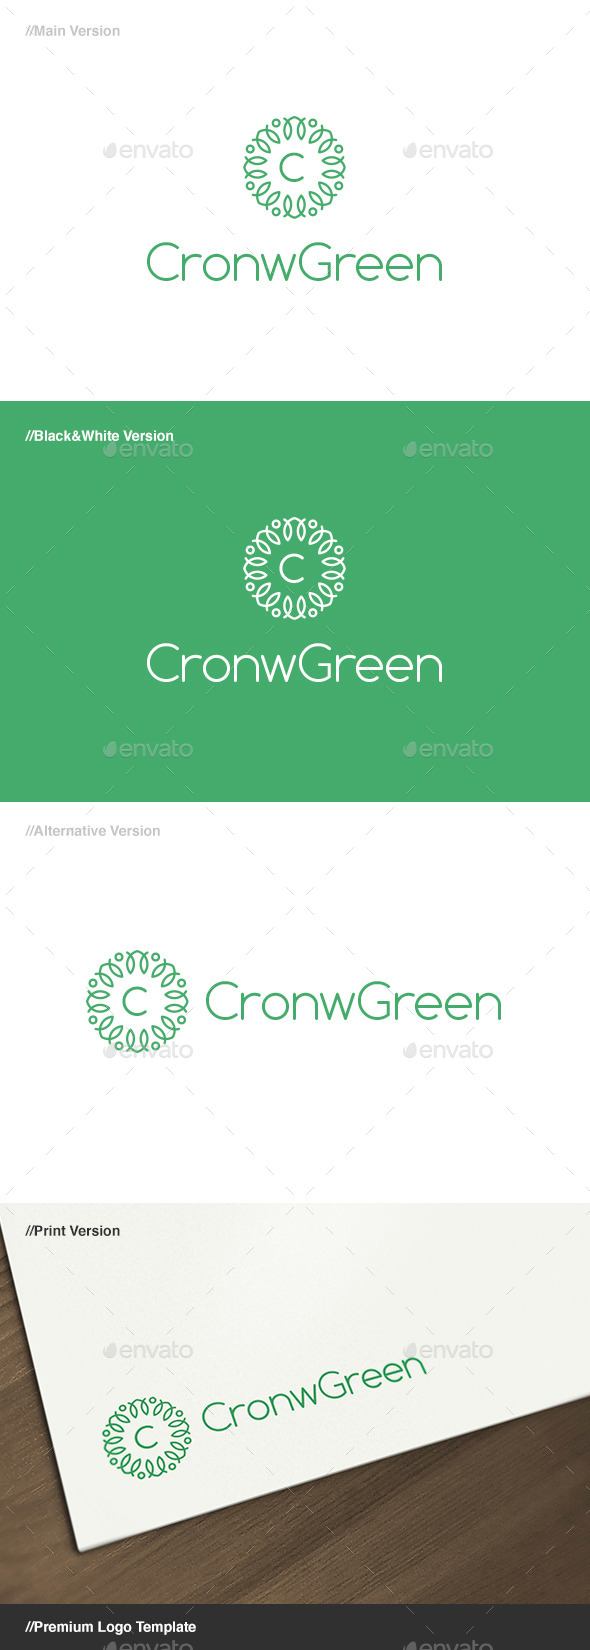 Crown Green Logo - Crests Logo Templates